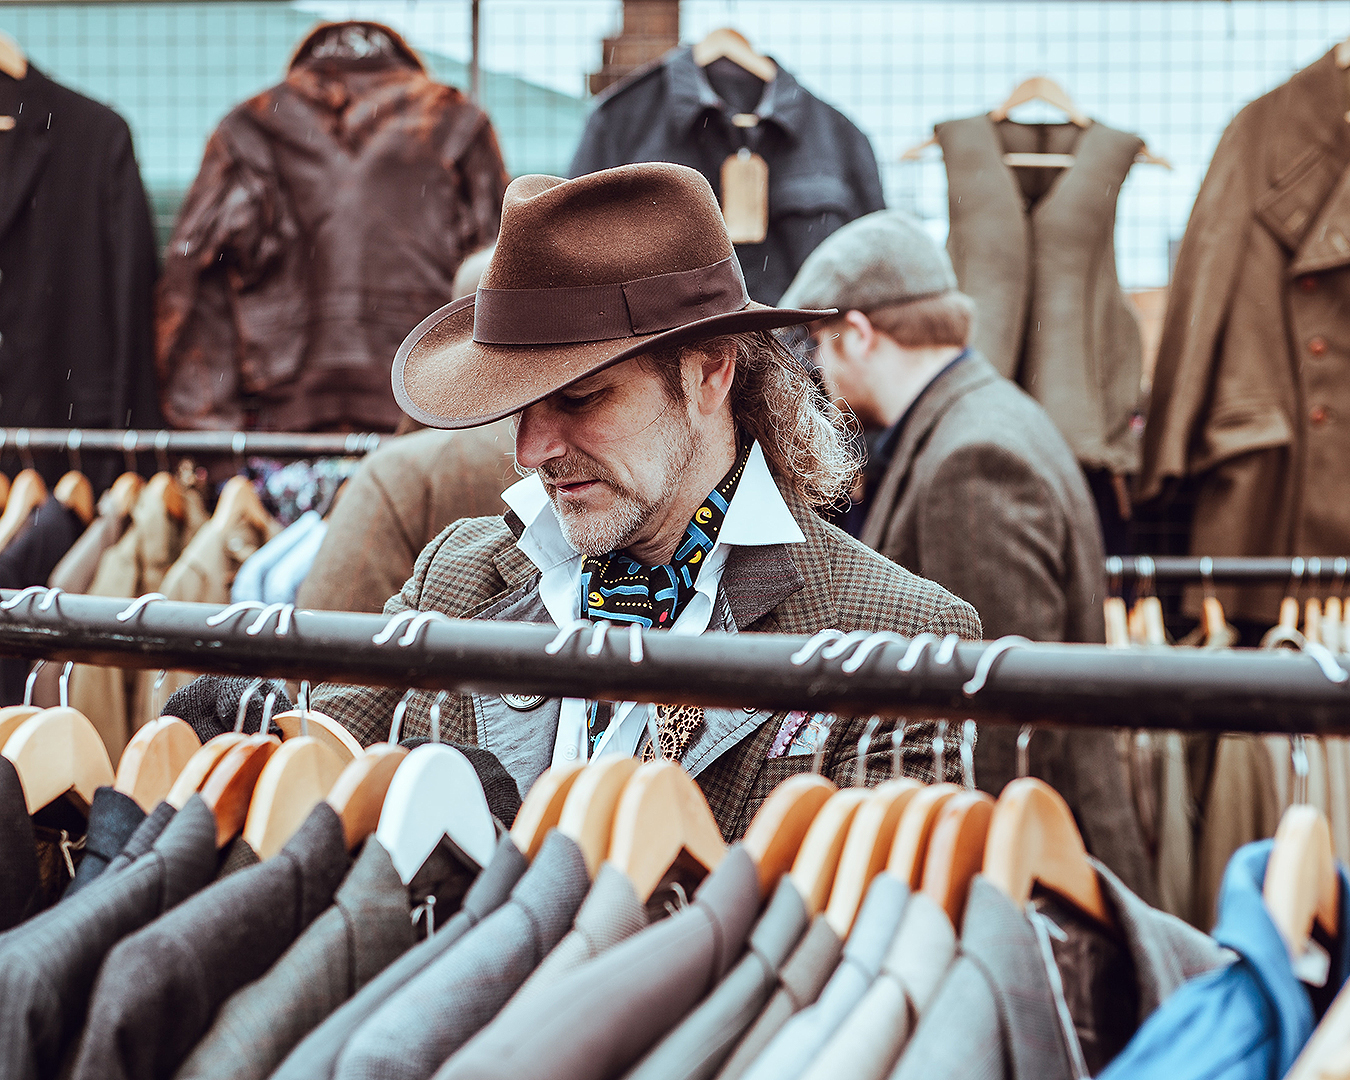 A man shops for new second hand threads.